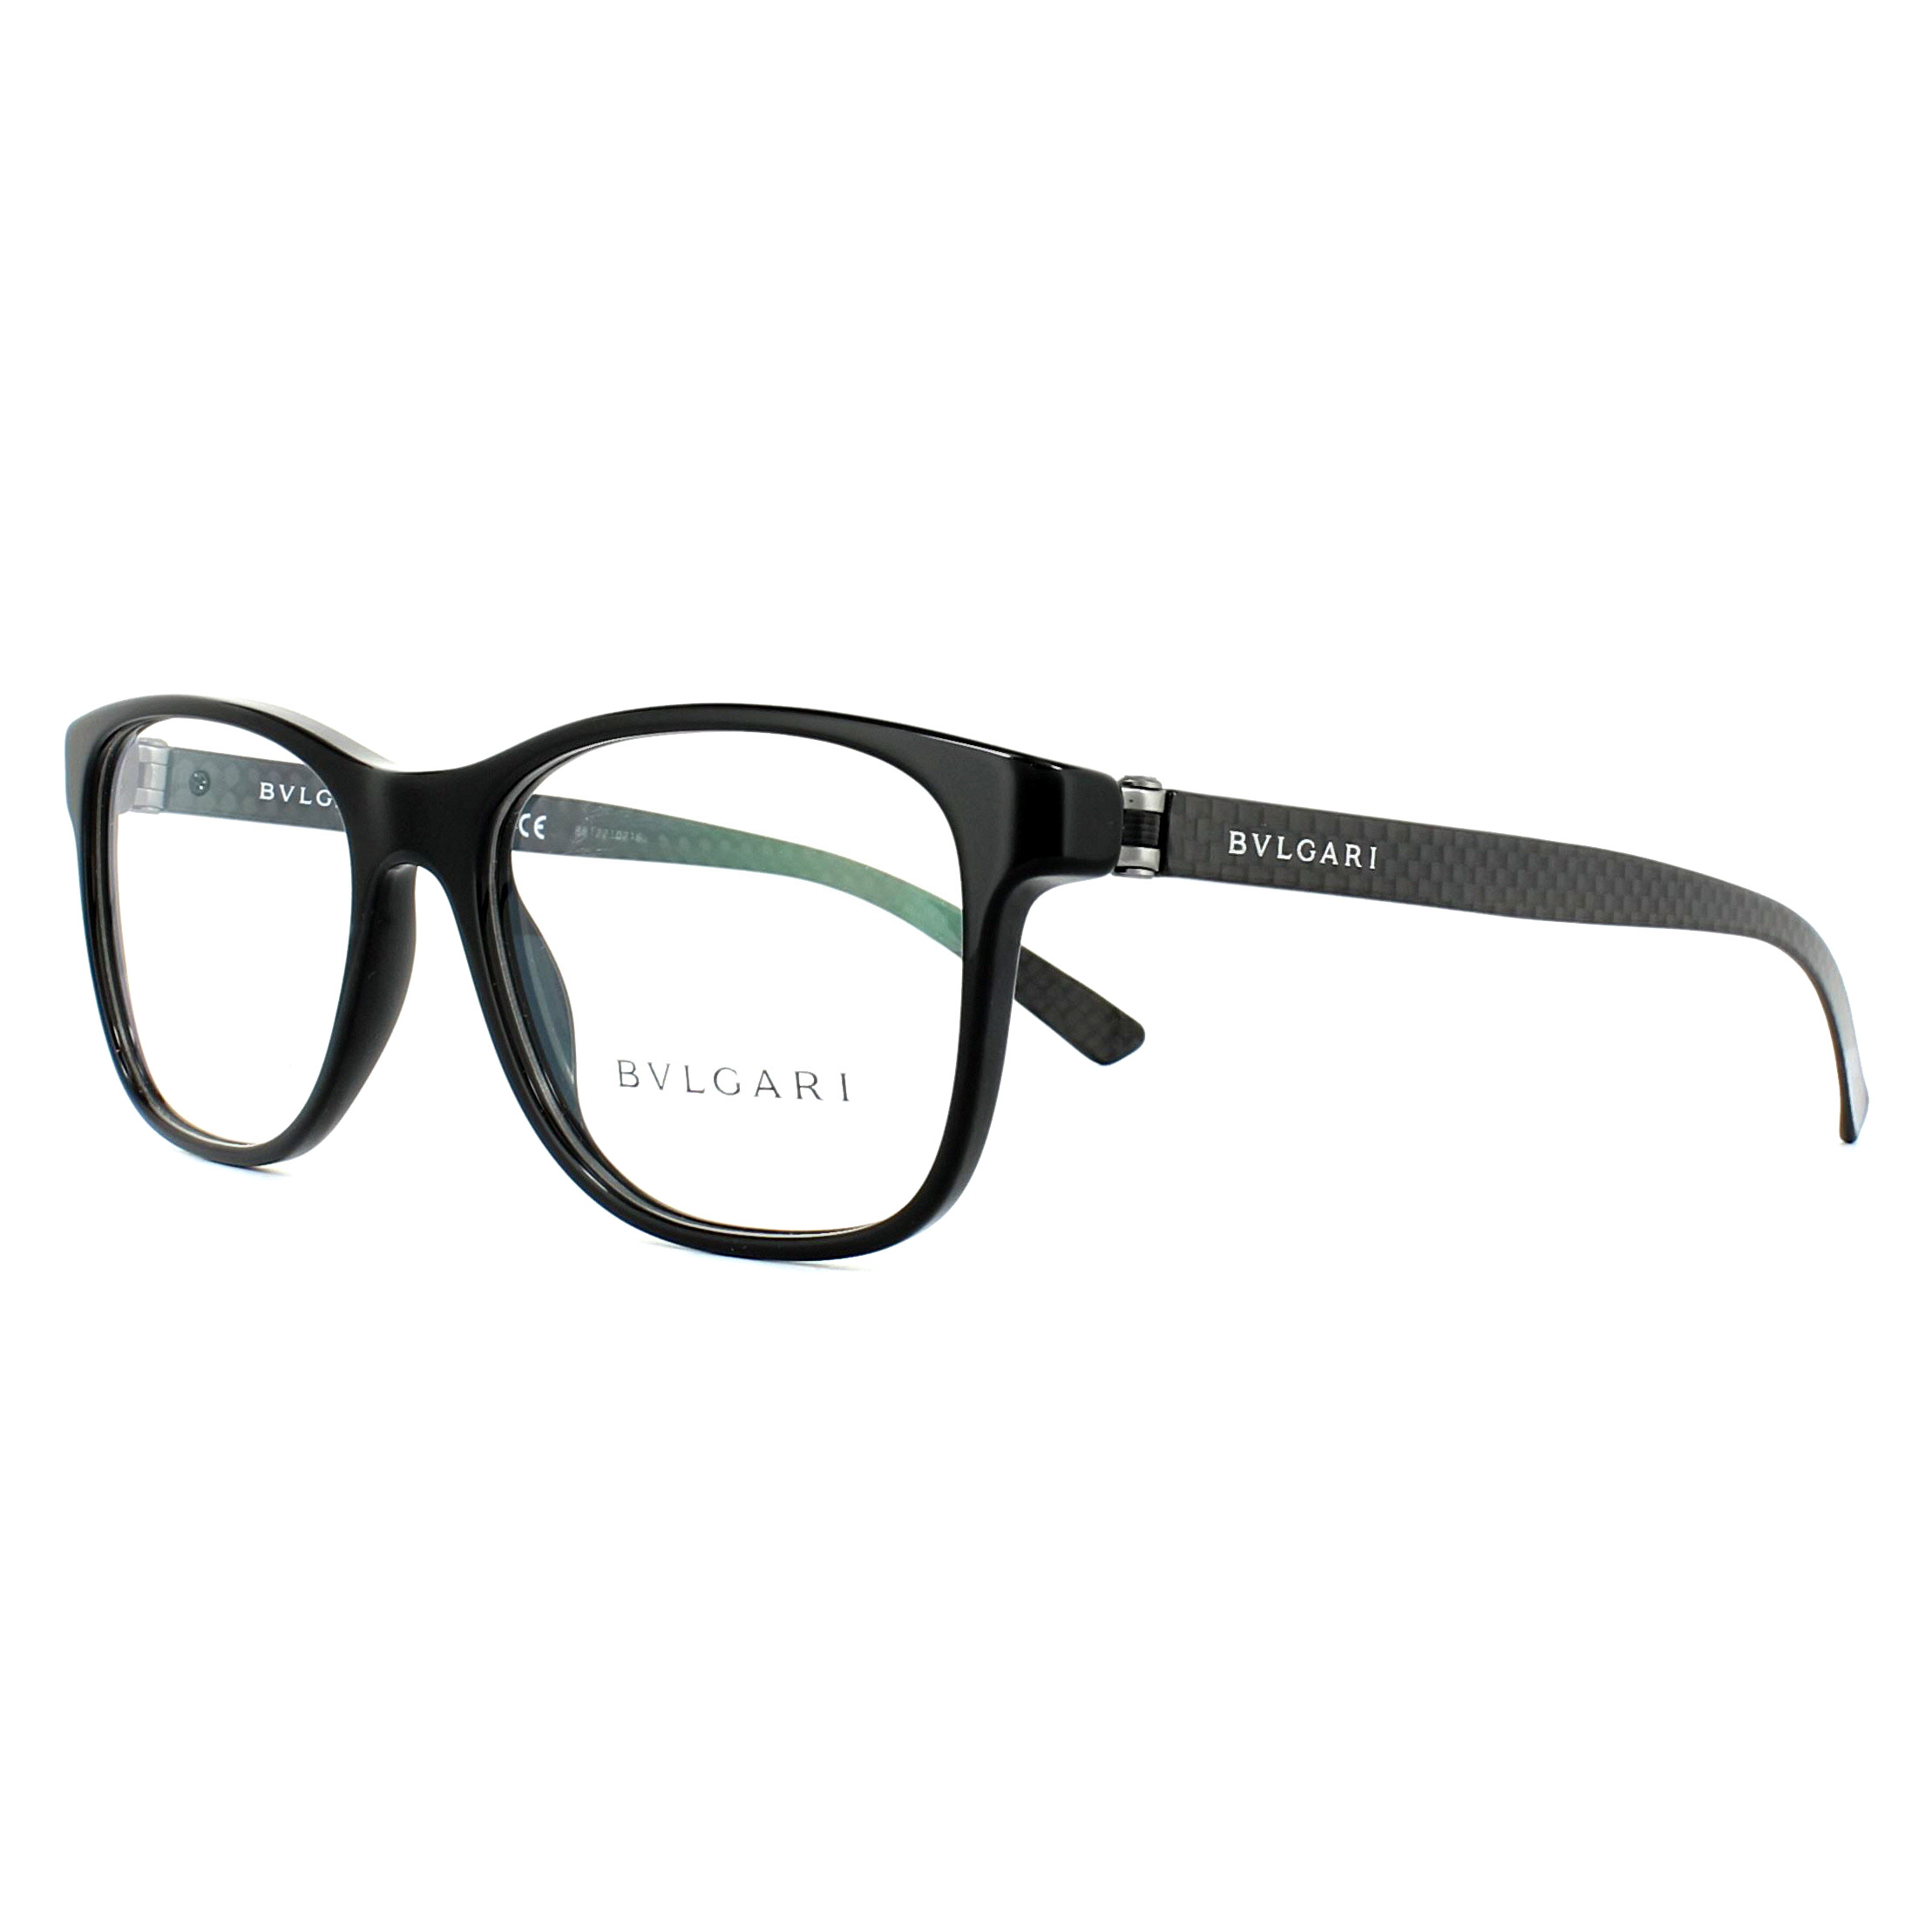 17f9e4479ce1f Sentinel Bvlgari Glasses Frames BV3036 501 Black 53mm Mens Womens